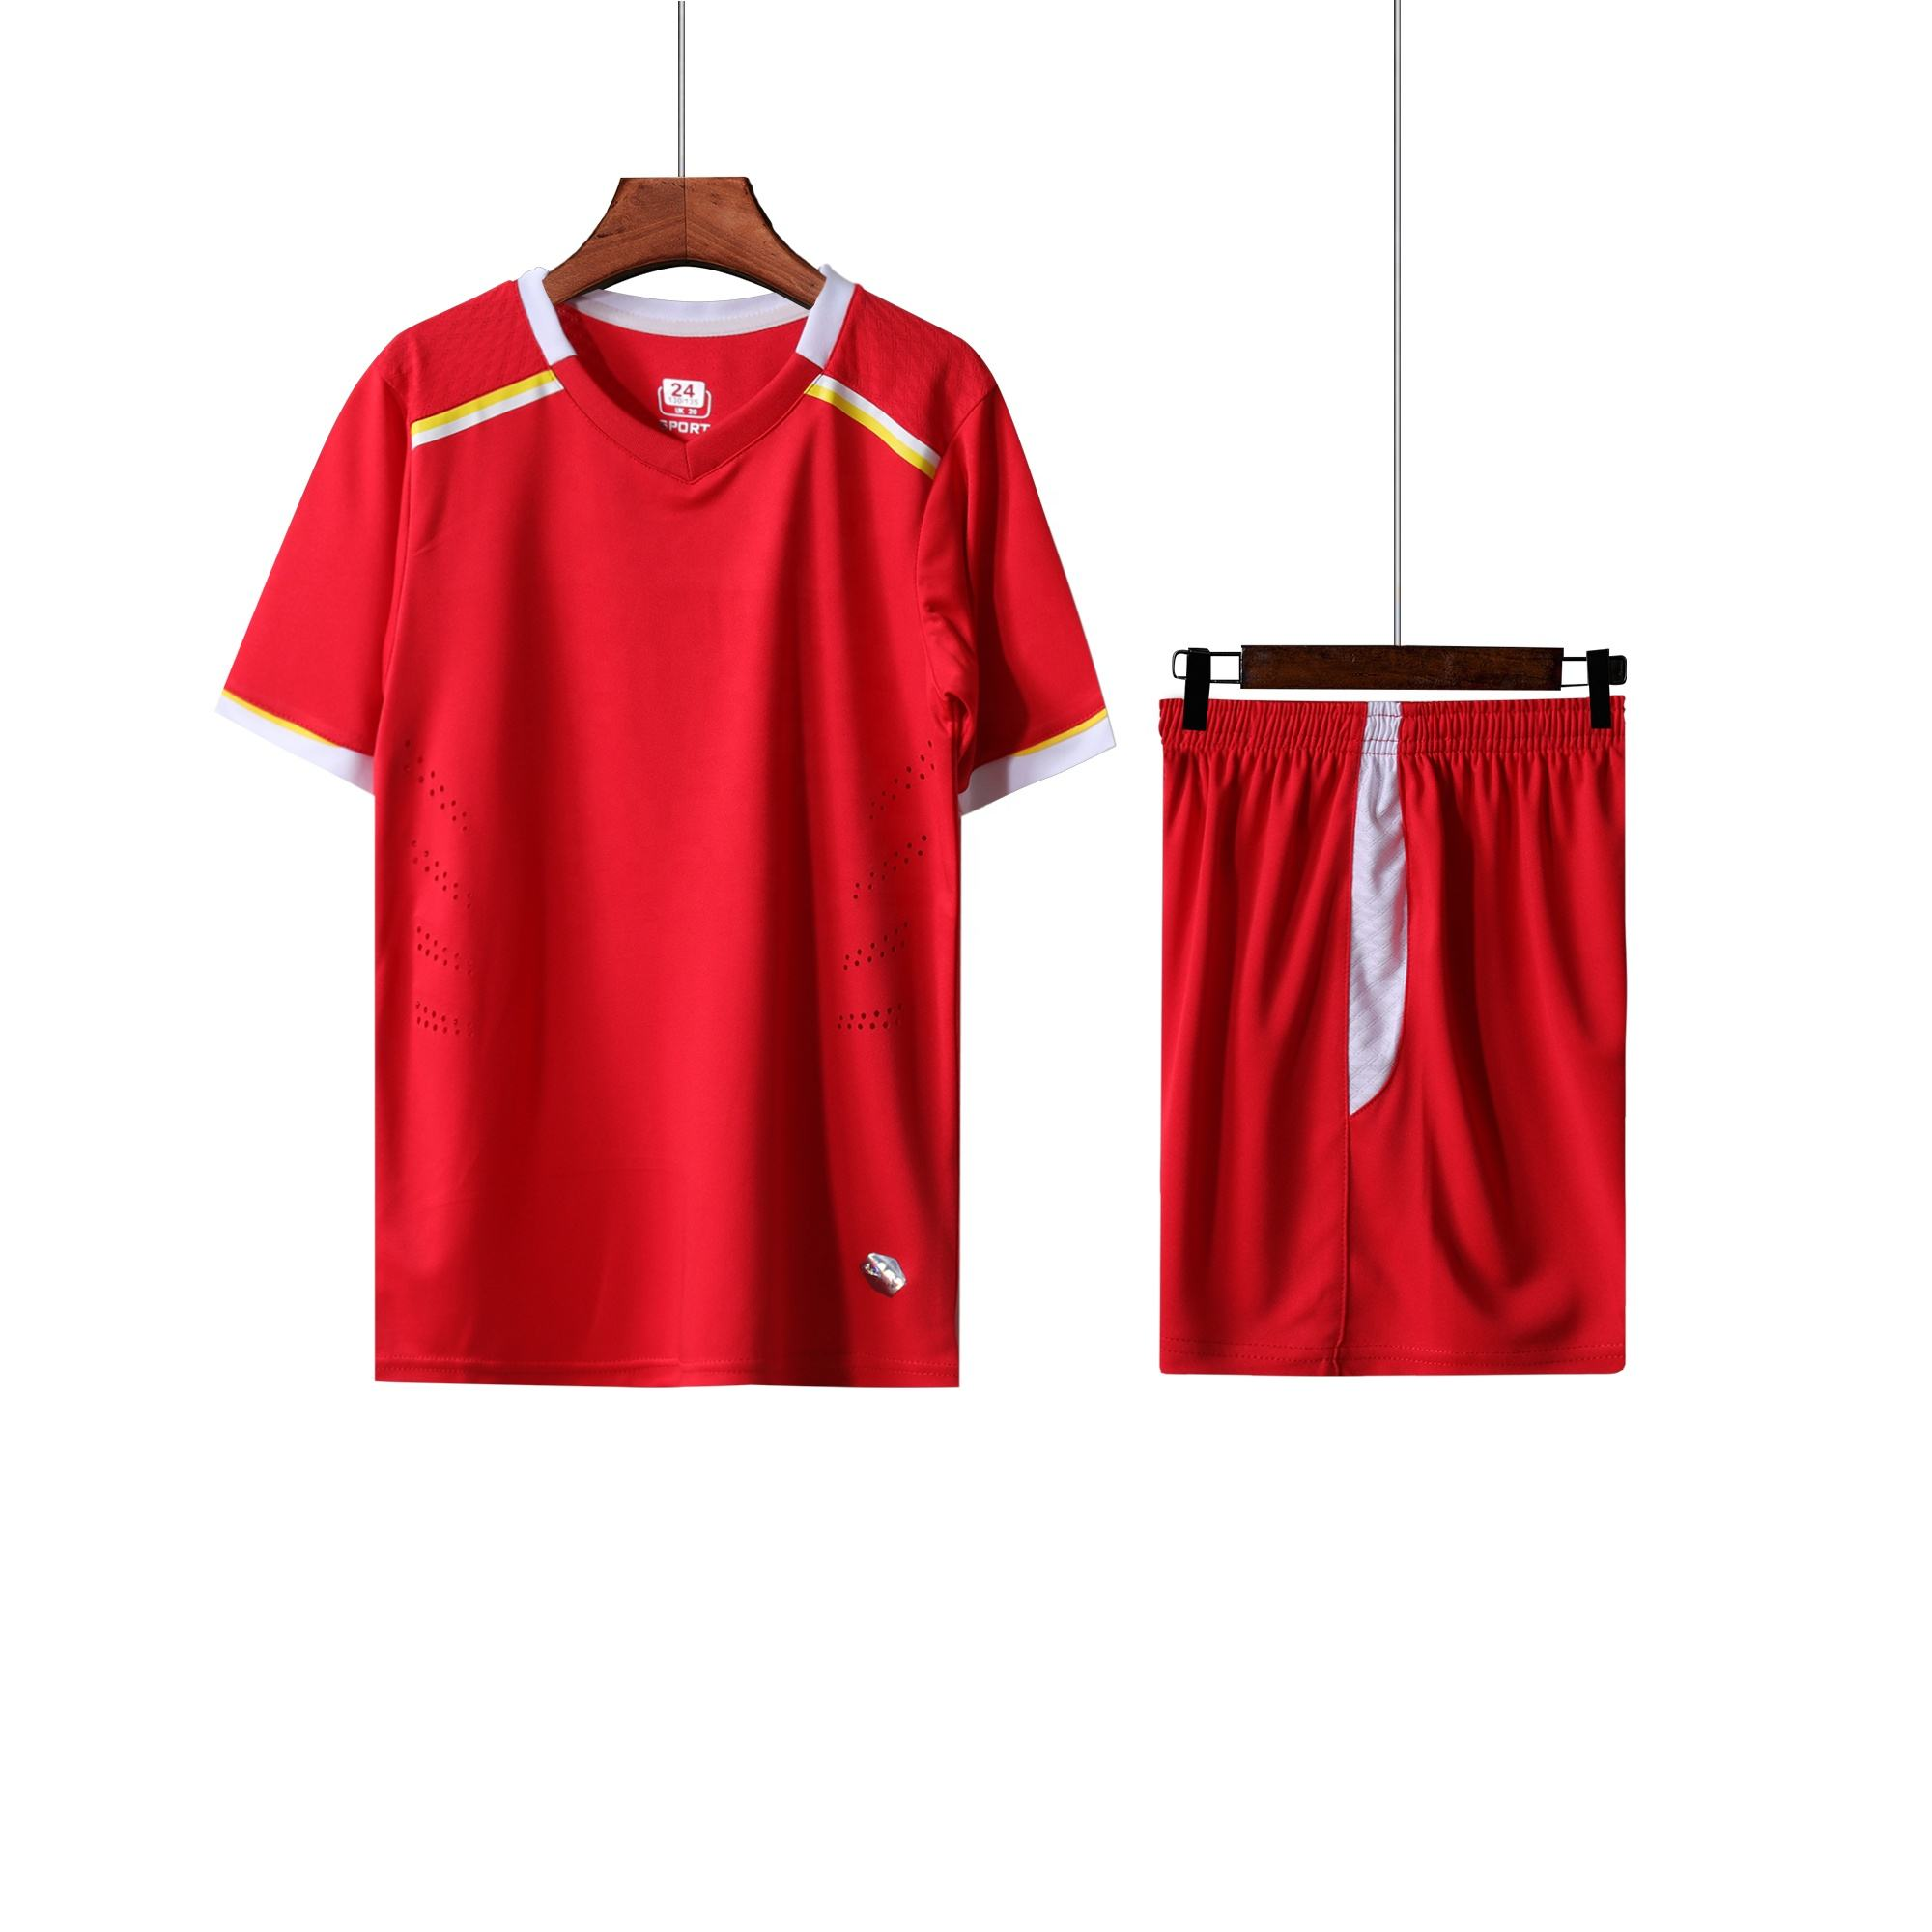 Sublimated custom soccer jersey set uniform football shirt kits for young children